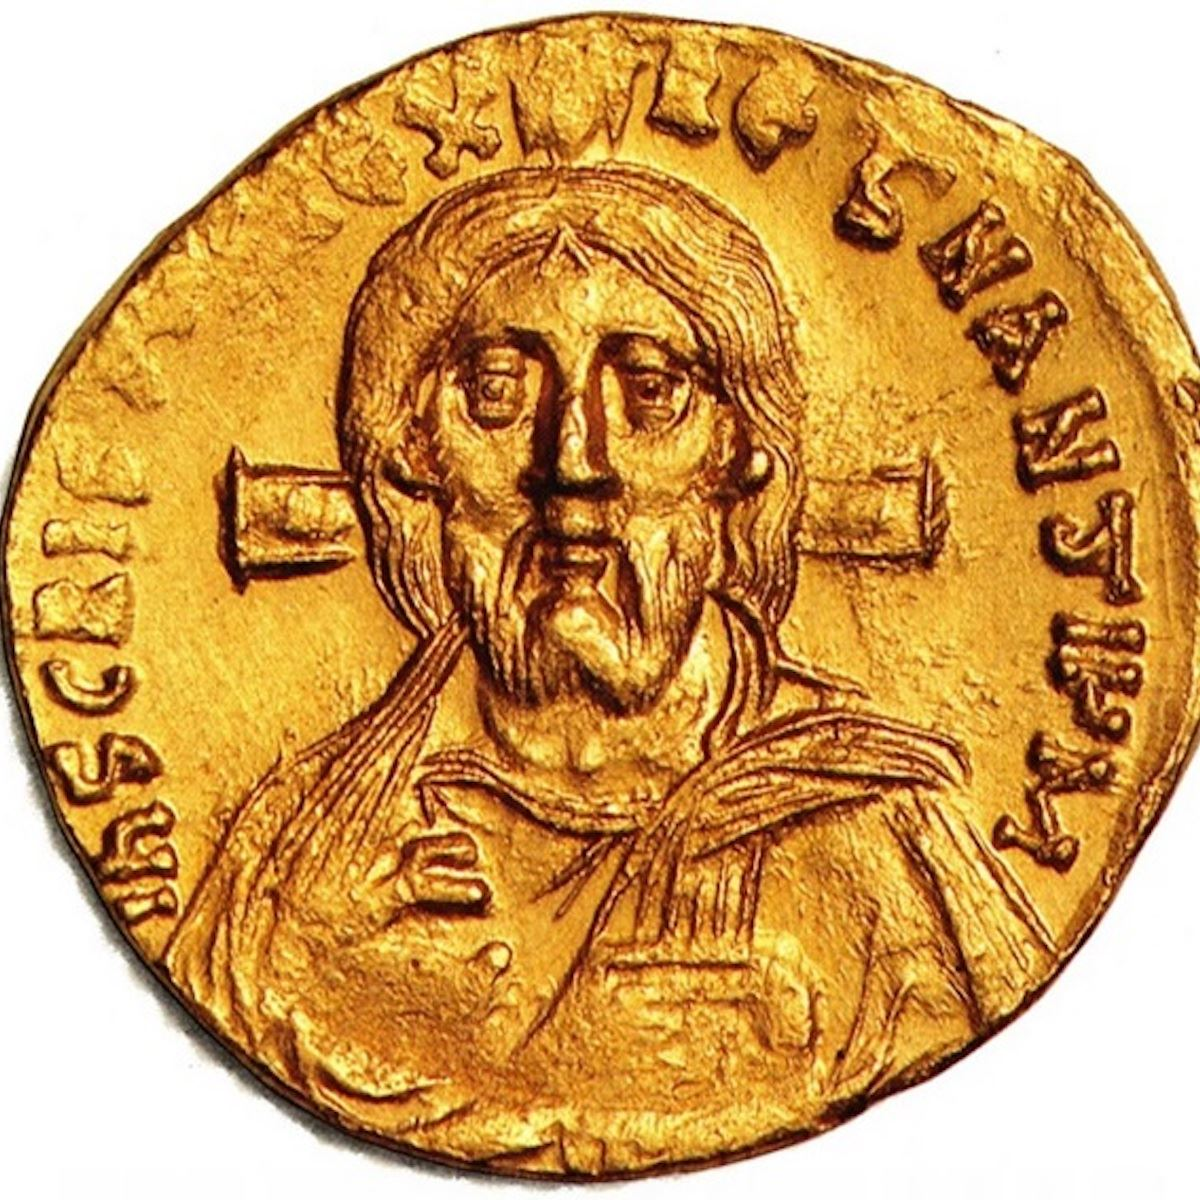 Byzantine era coin dating from AD 692 shows Jesus on a cross bearing a remarkable resemblance to Shroud face